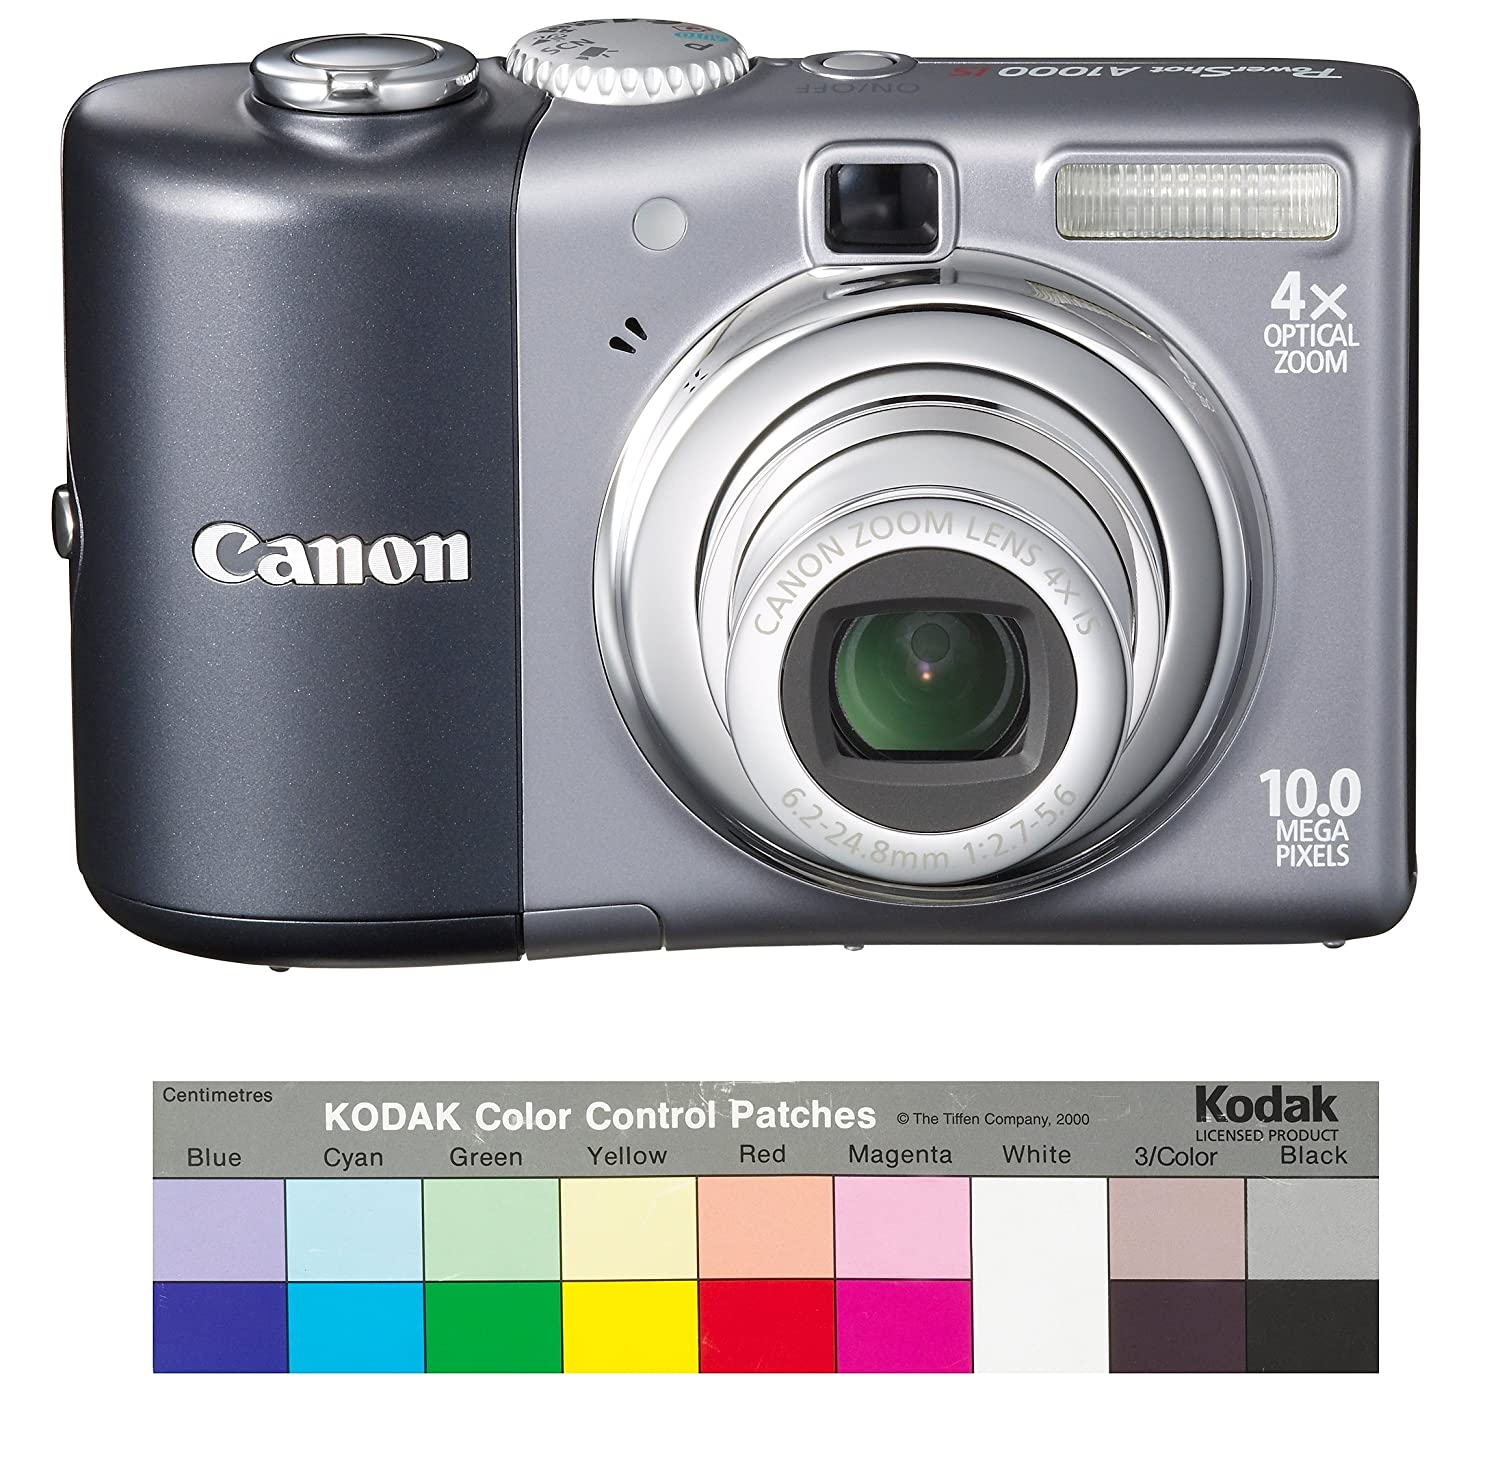 Amazon.com : Canon Powershot A1000IS 10MP Digital Camera with 4x Optical  Image Stabilized Zoom (Grey) : Point And Shoot Digital Cameras : Camera &  Photo